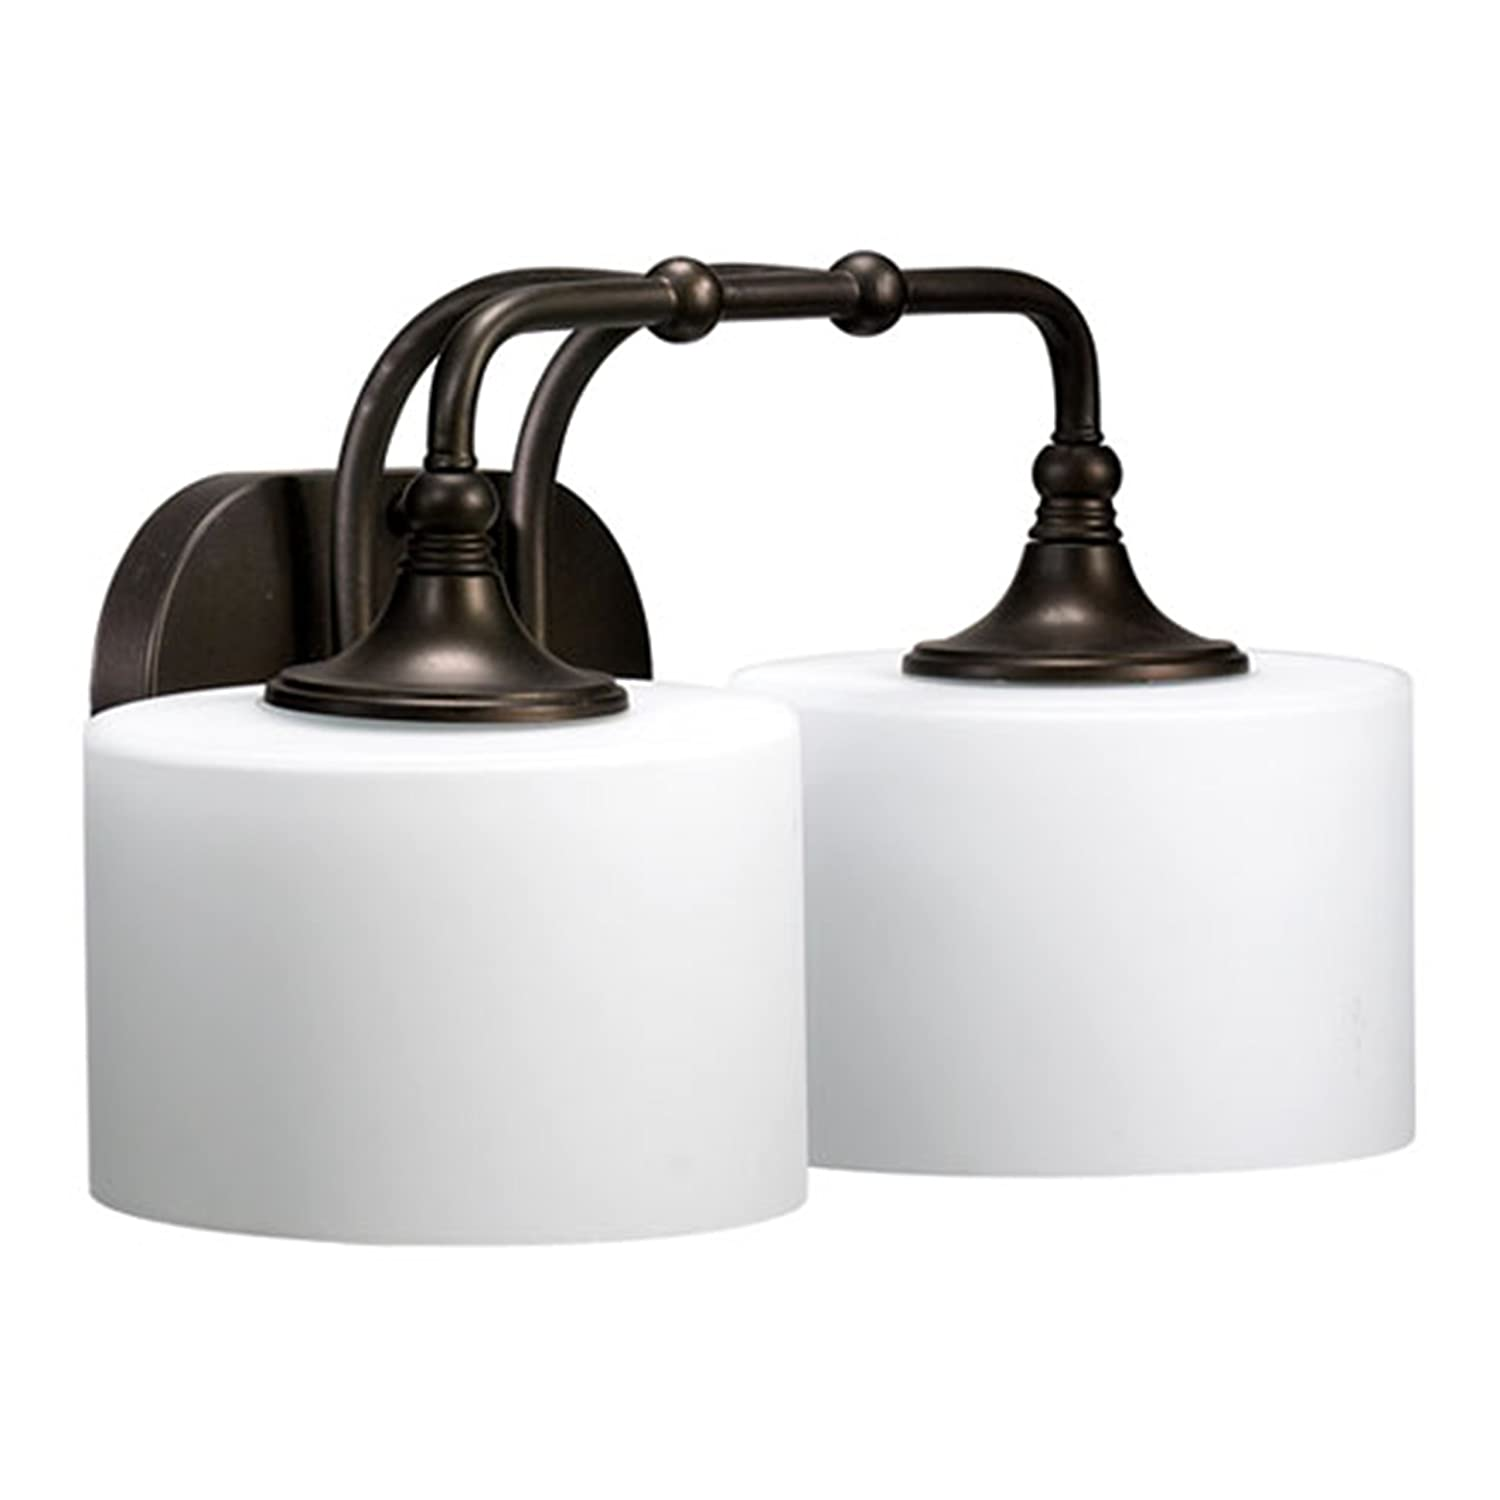 Quorum International 5090-2-86 Rockwood Collection 2-Light Vanity Fixture, Oiled Bronze Finish with Satin Opal Glass